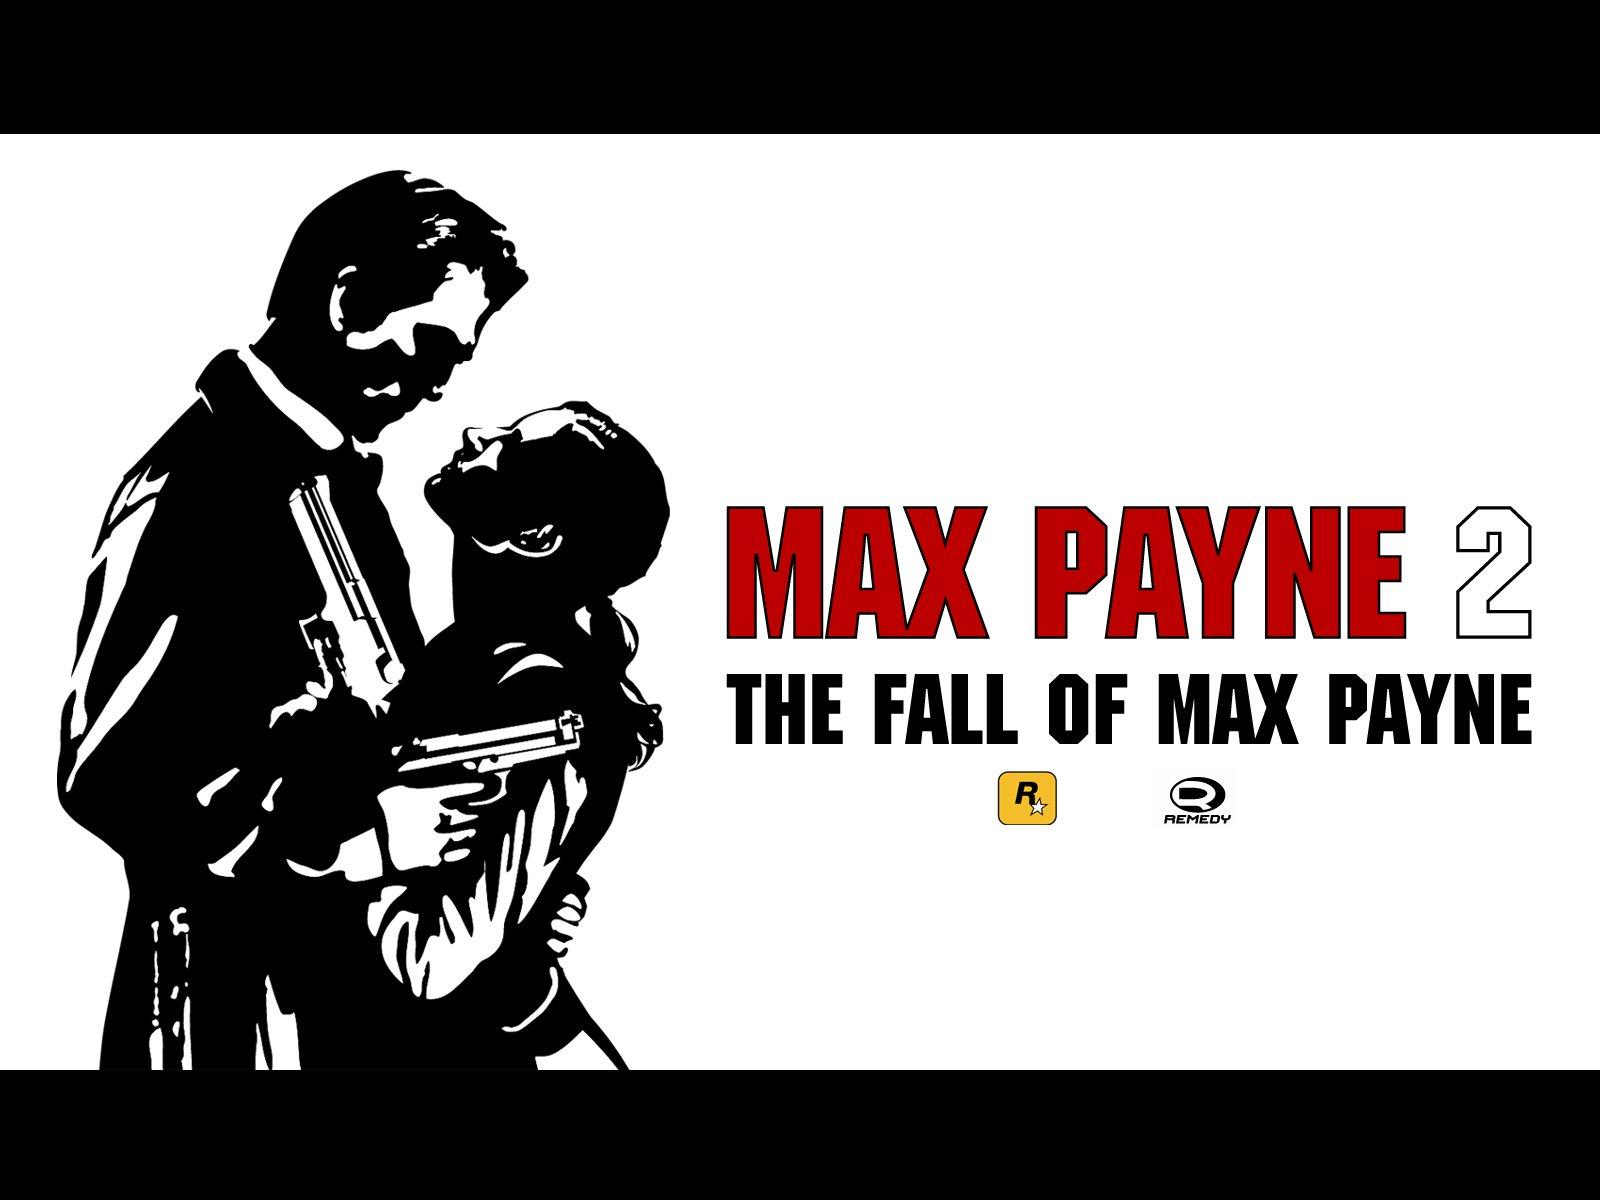 Обои Max Payne 2: The Fall of Max Payne 1600x1200